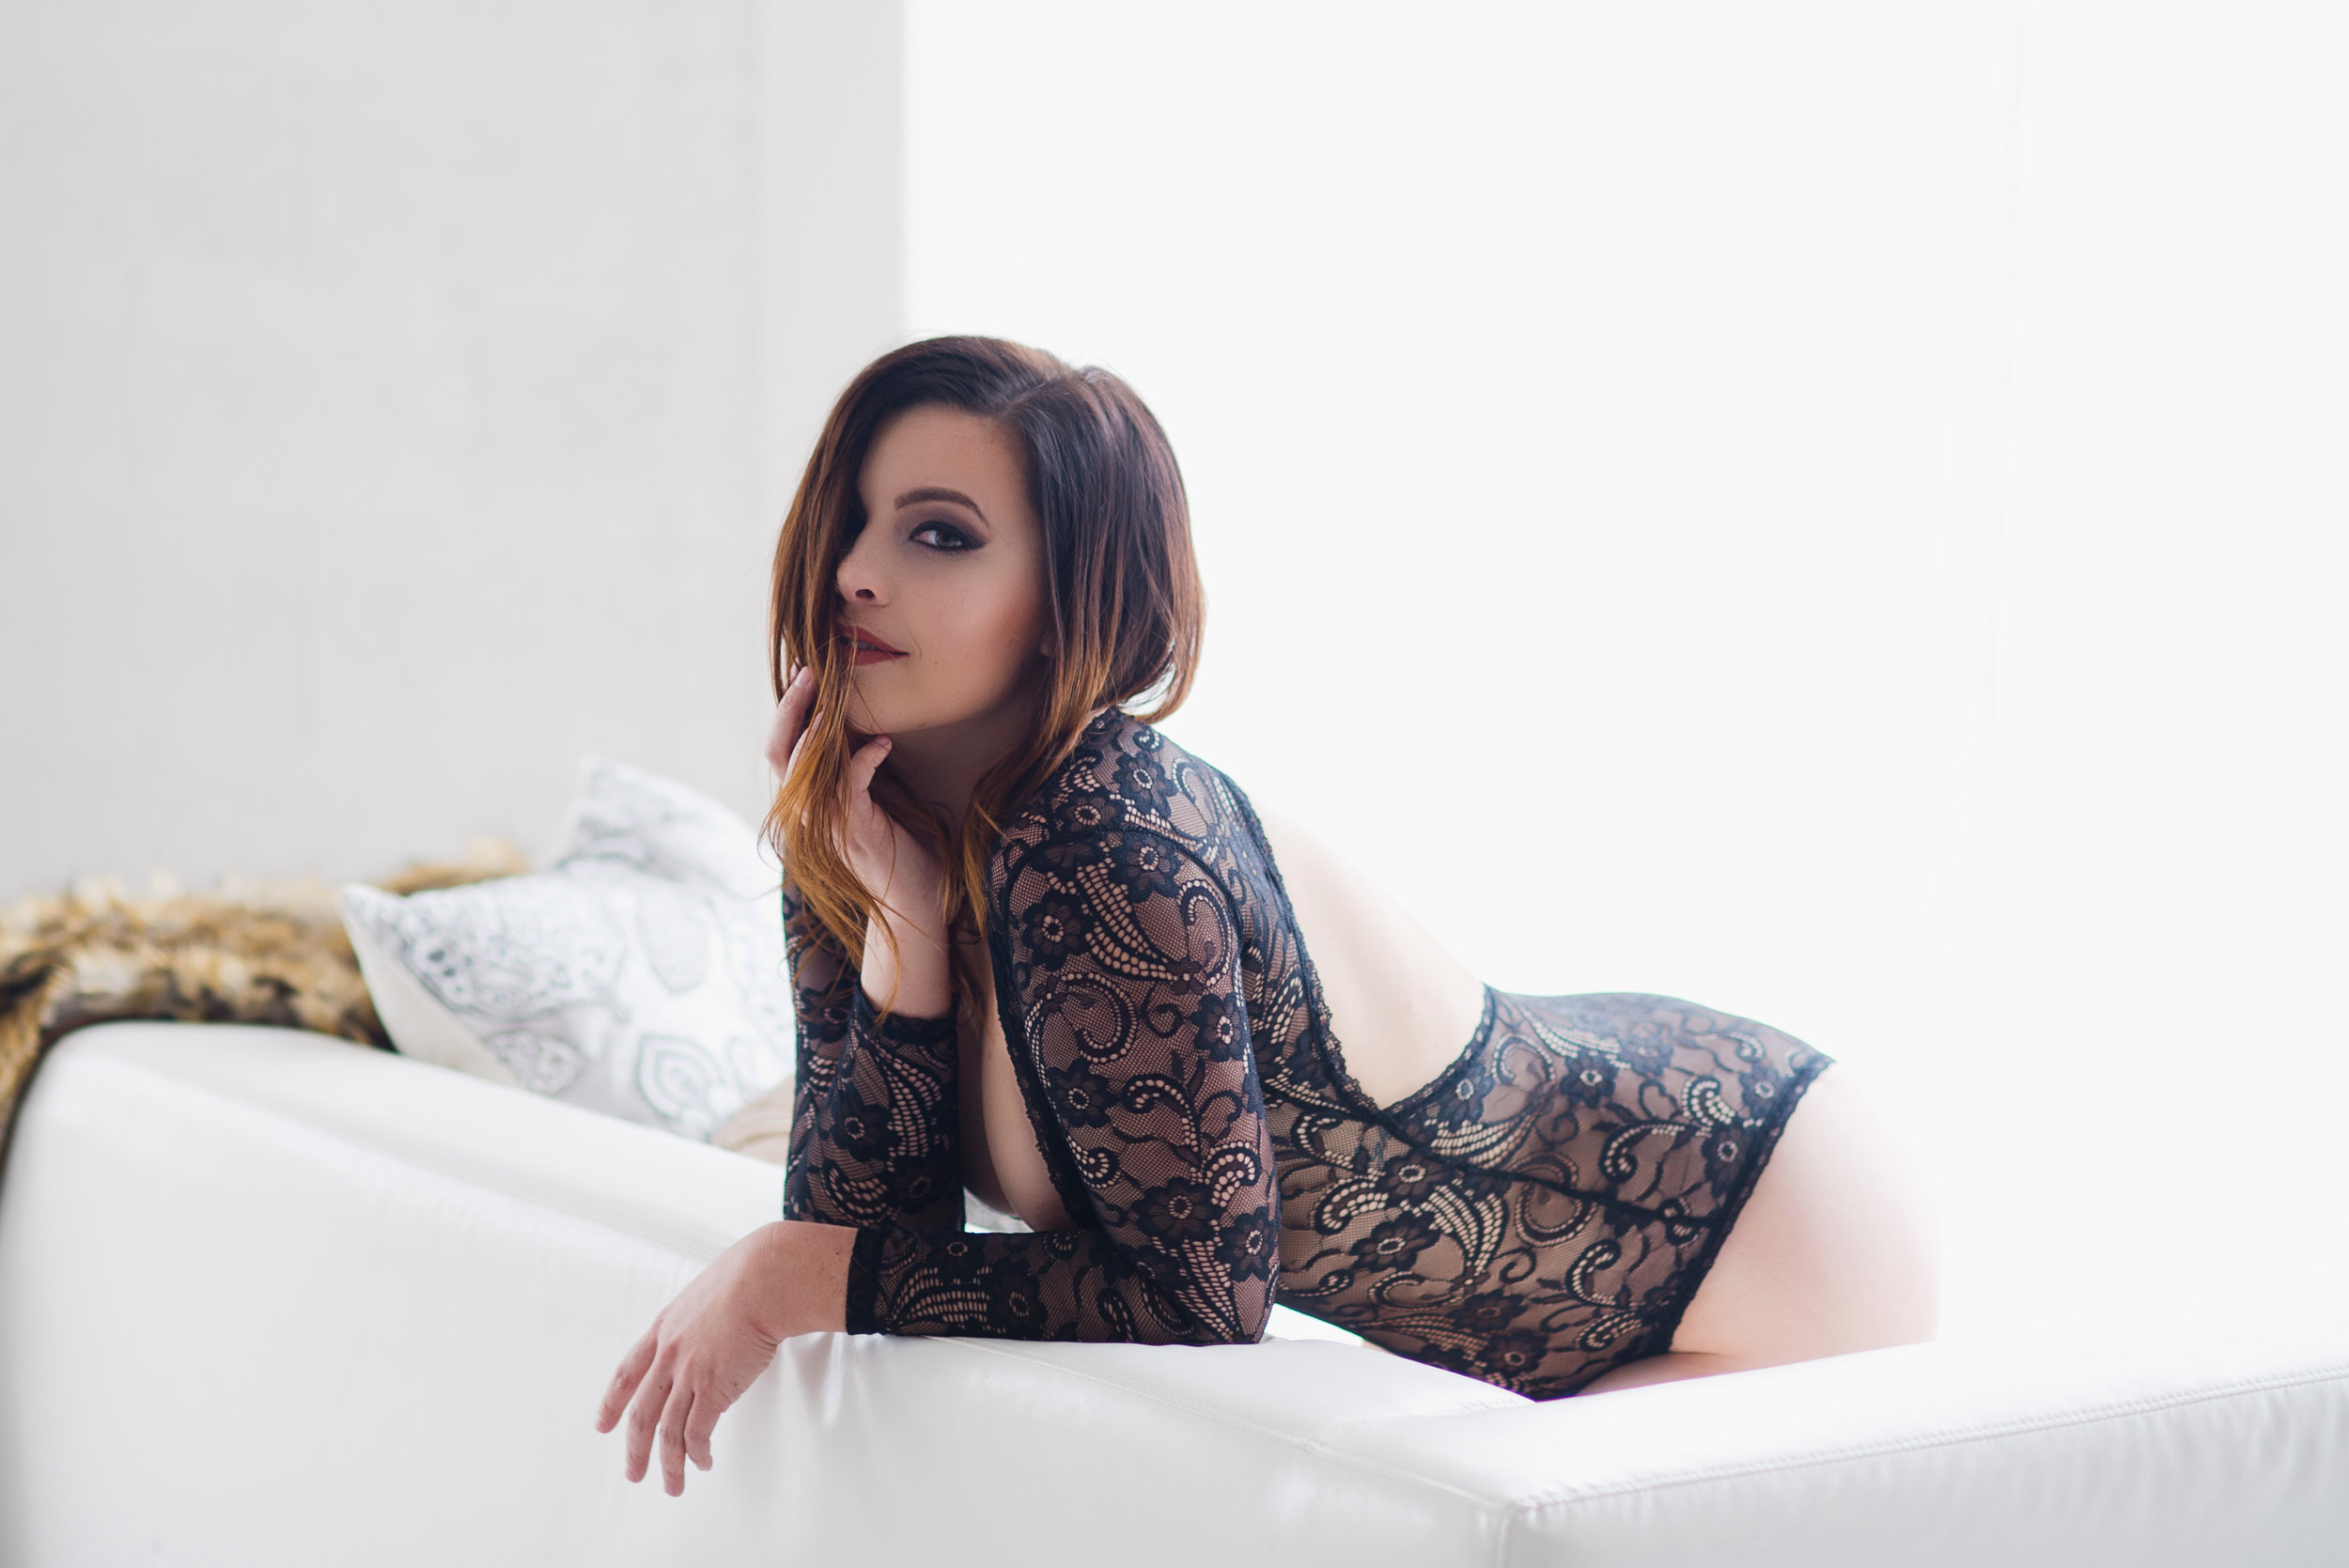 005Amy Cloud Photography Salt Lake City Boudoir Photographer .jpg